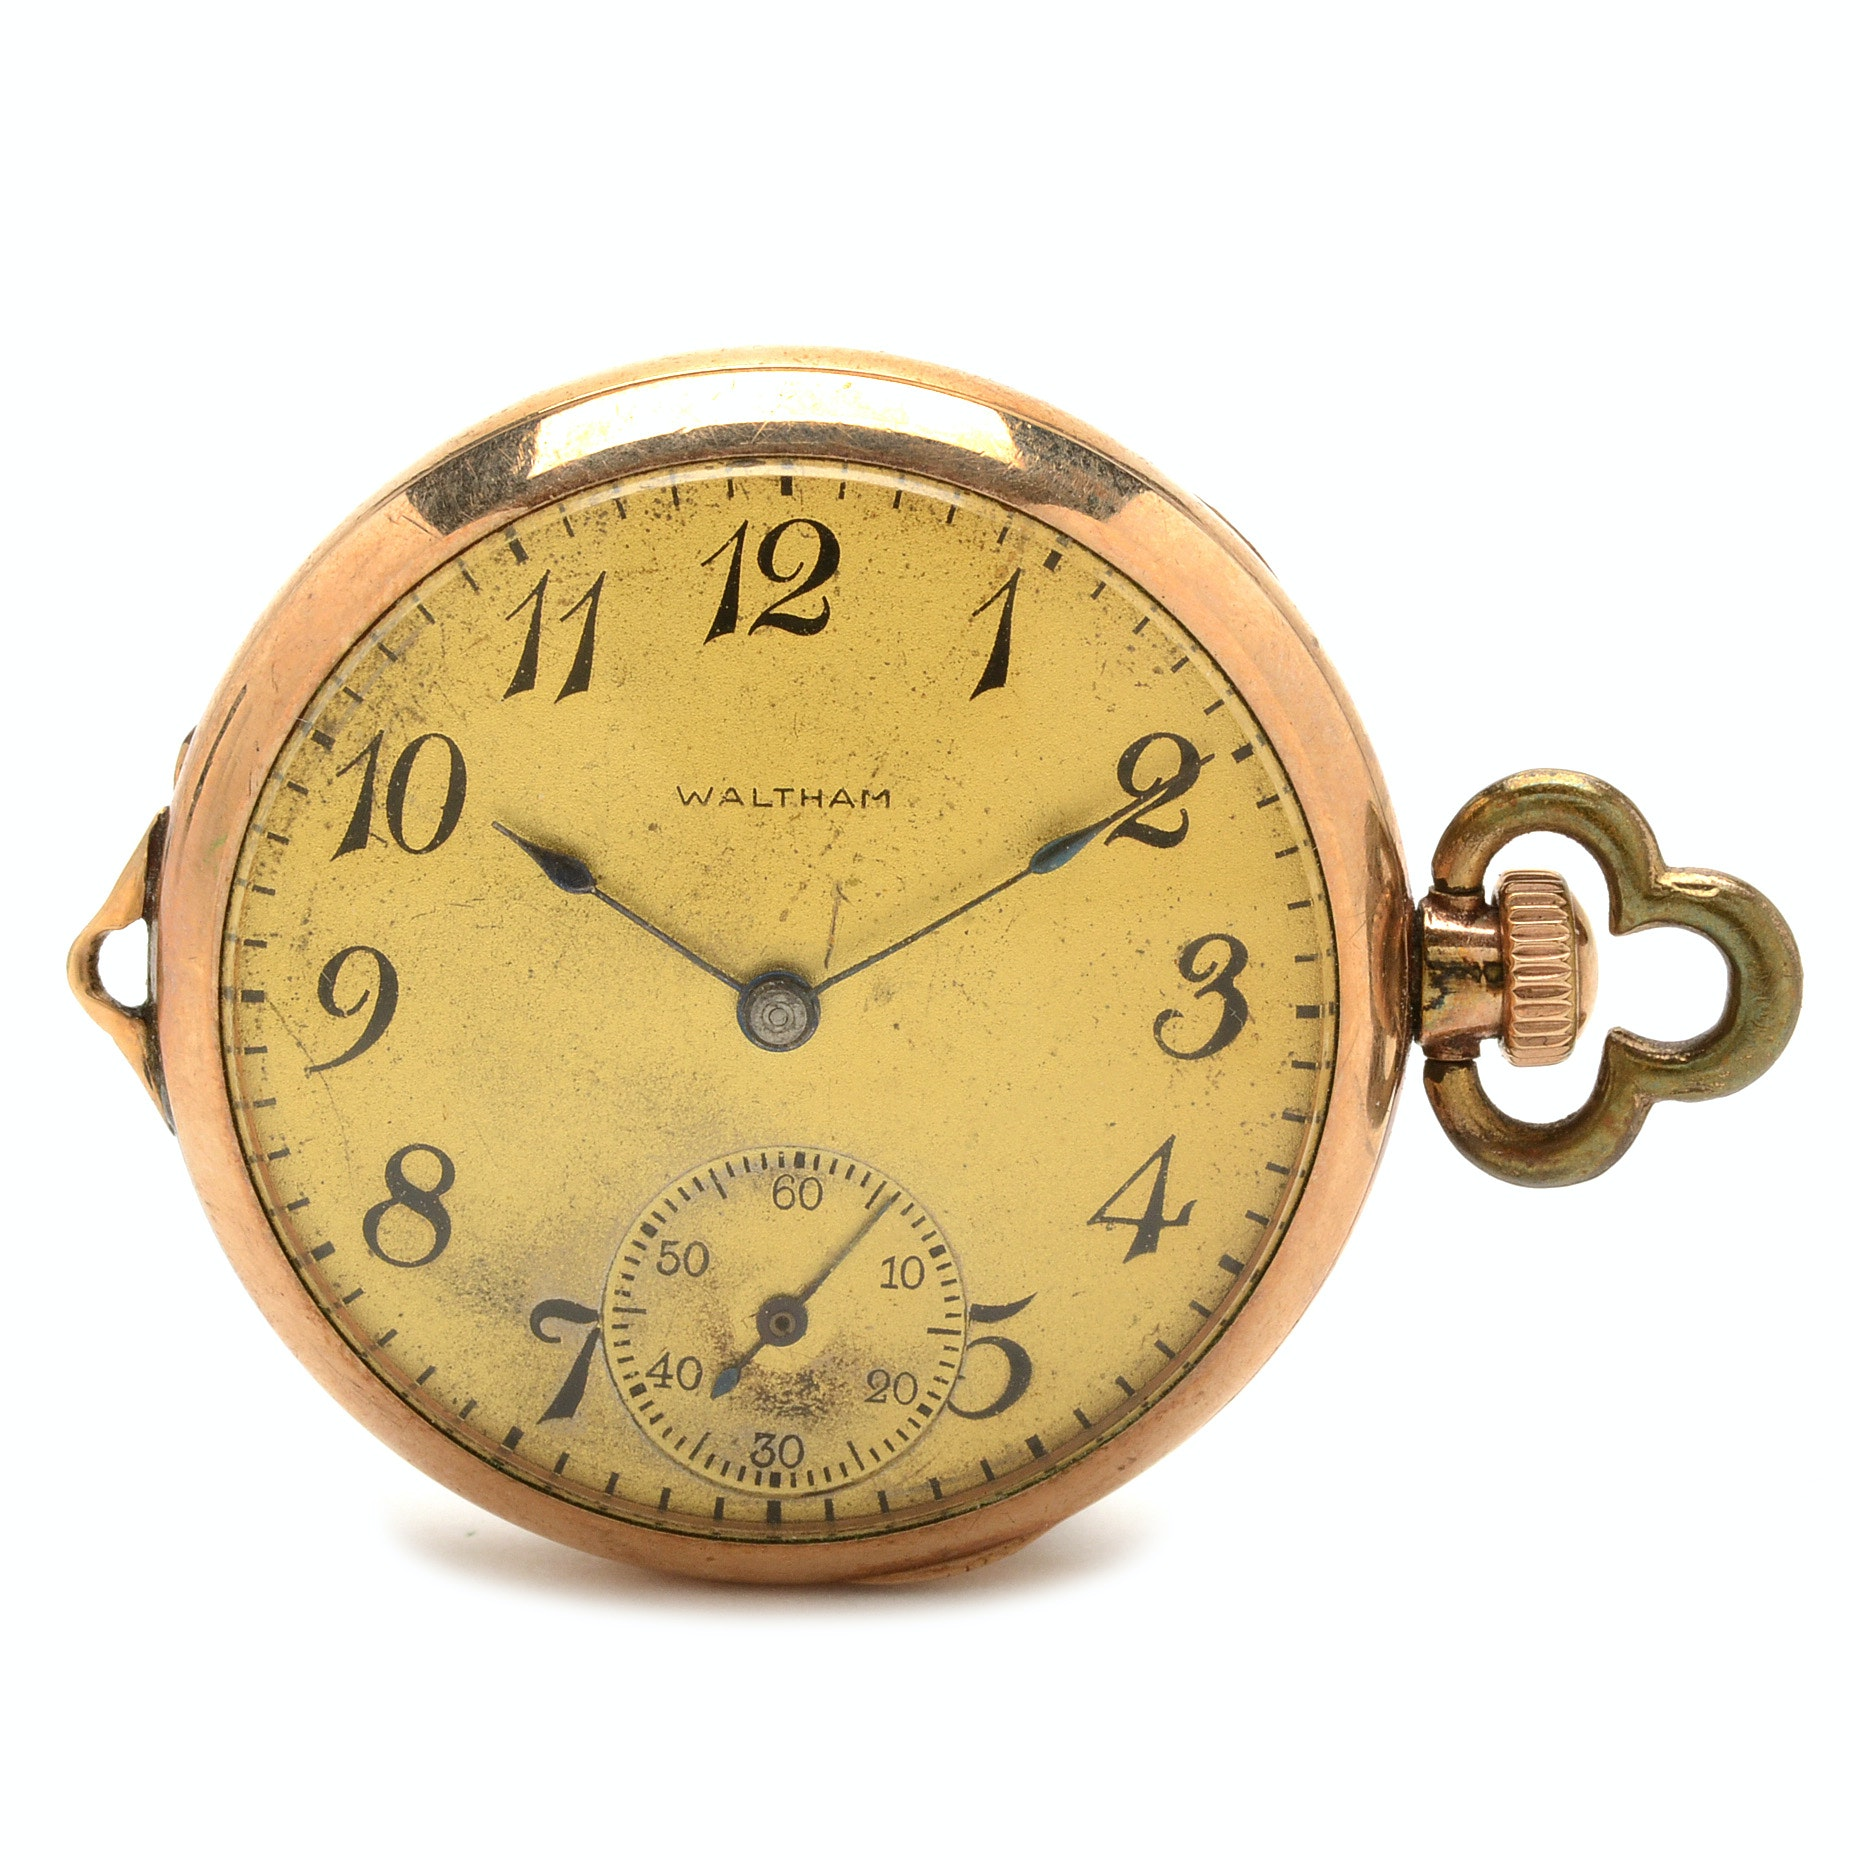 Antique Waltham Gold Filled Convertible Pocket Watch